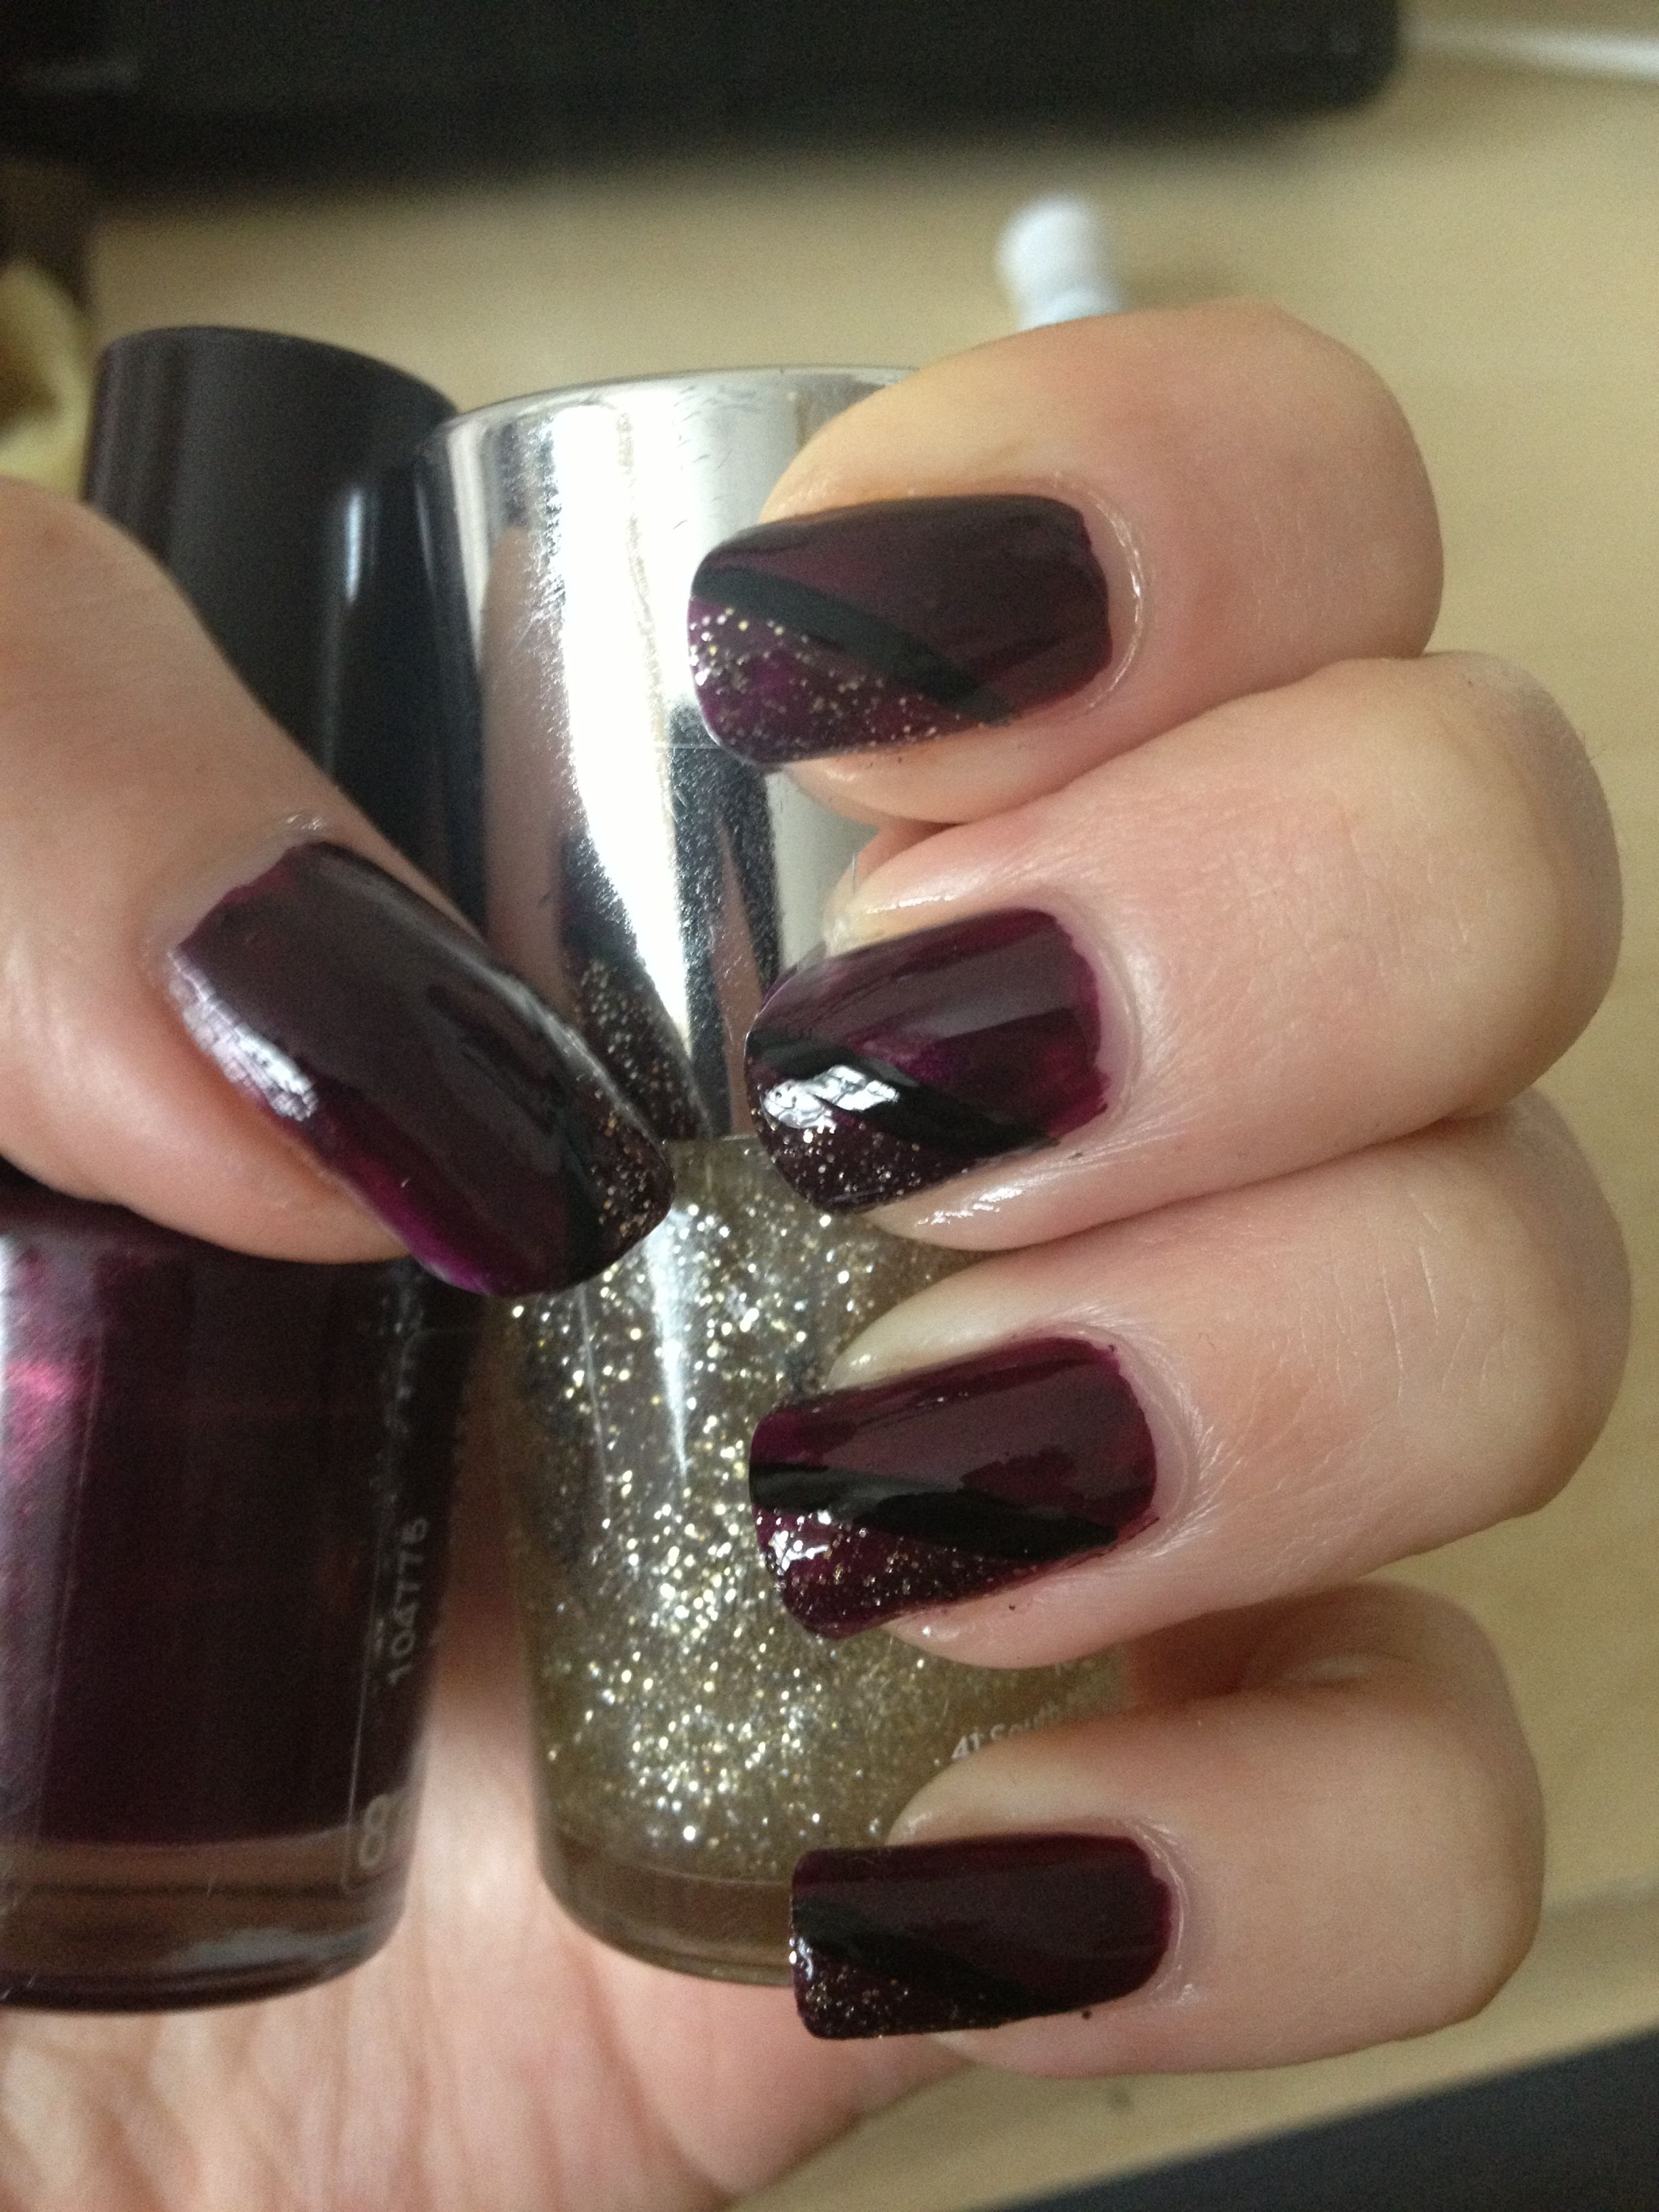 Dark nail design | Maquillaje | Pinterest | Dark nails and Dark nail art